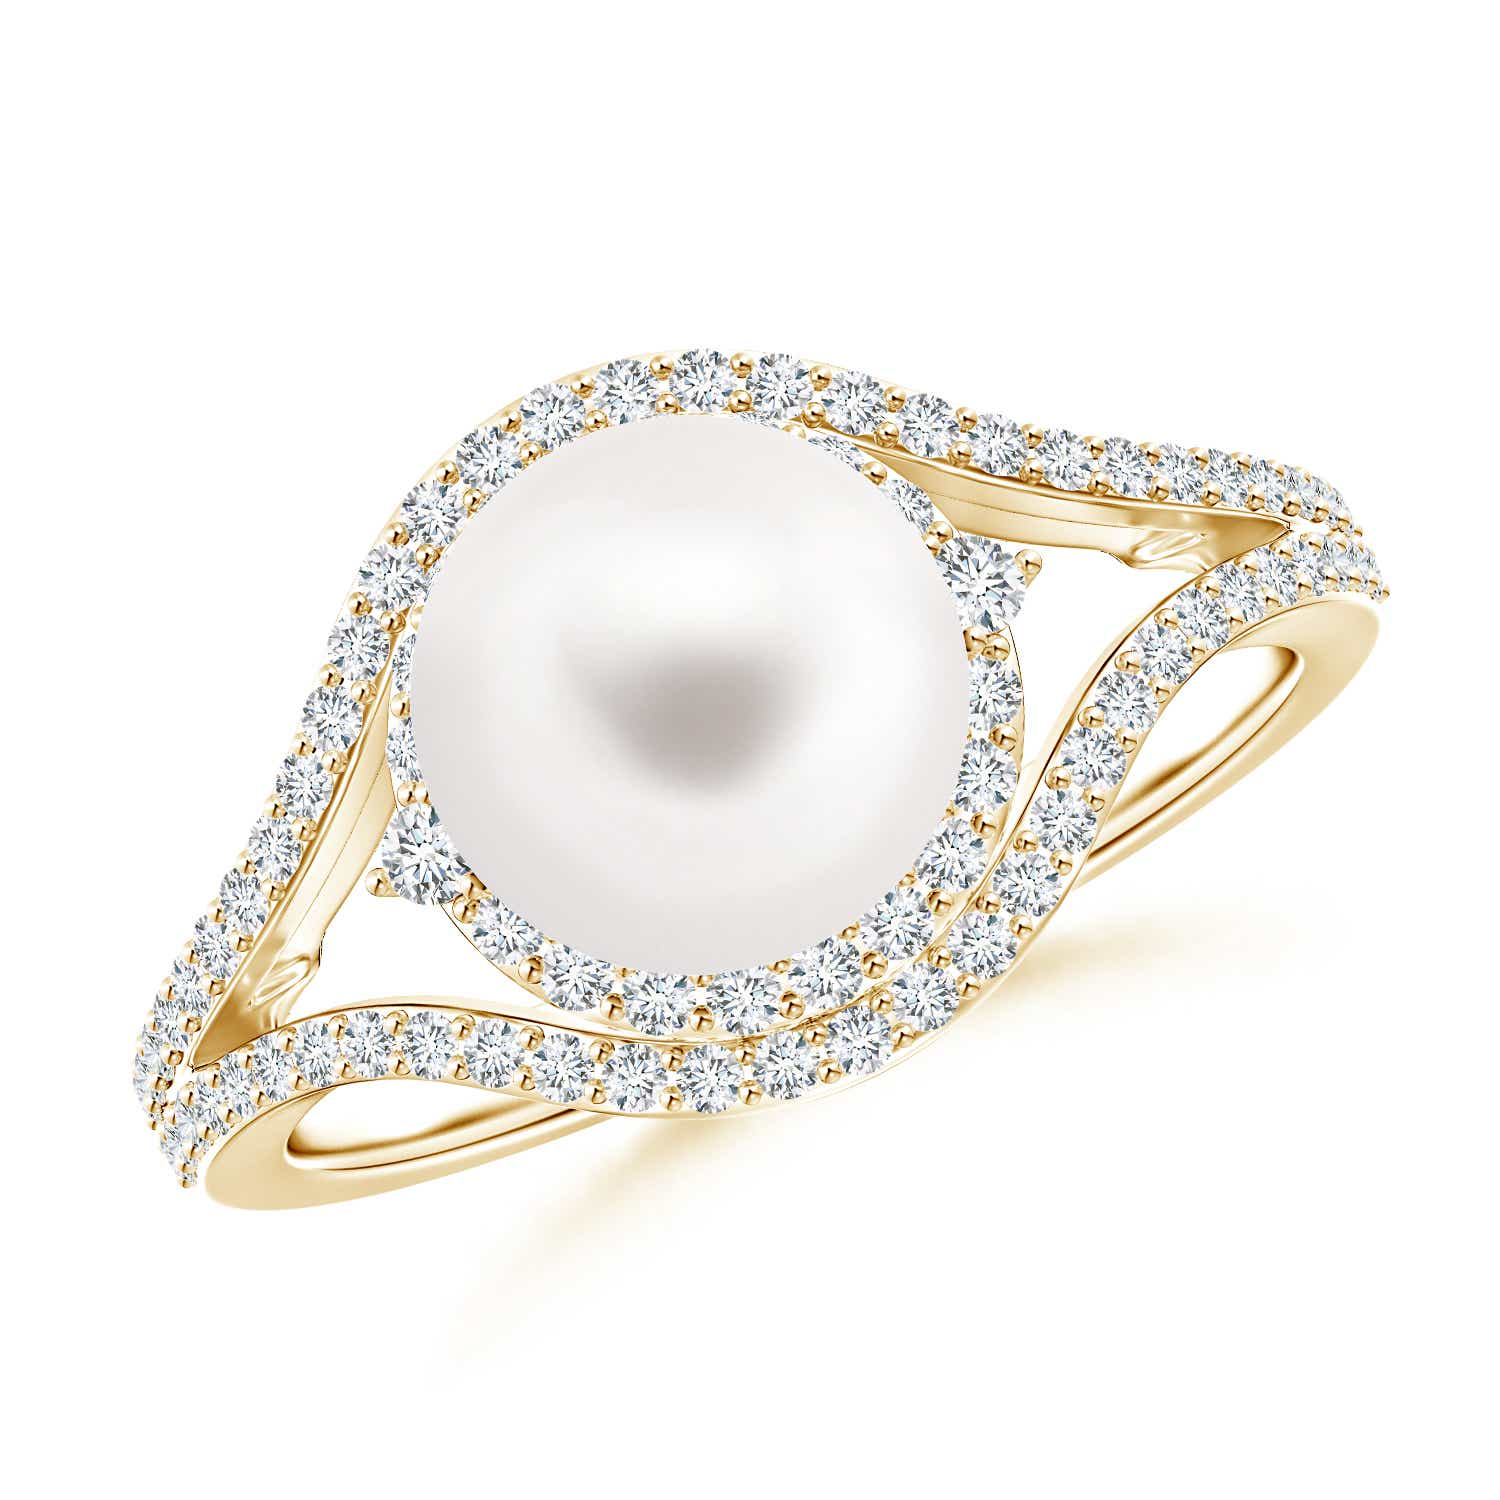 FreshWater Cultured Pearl Split Shank Ring with Diamond Double Halo - Angara.com